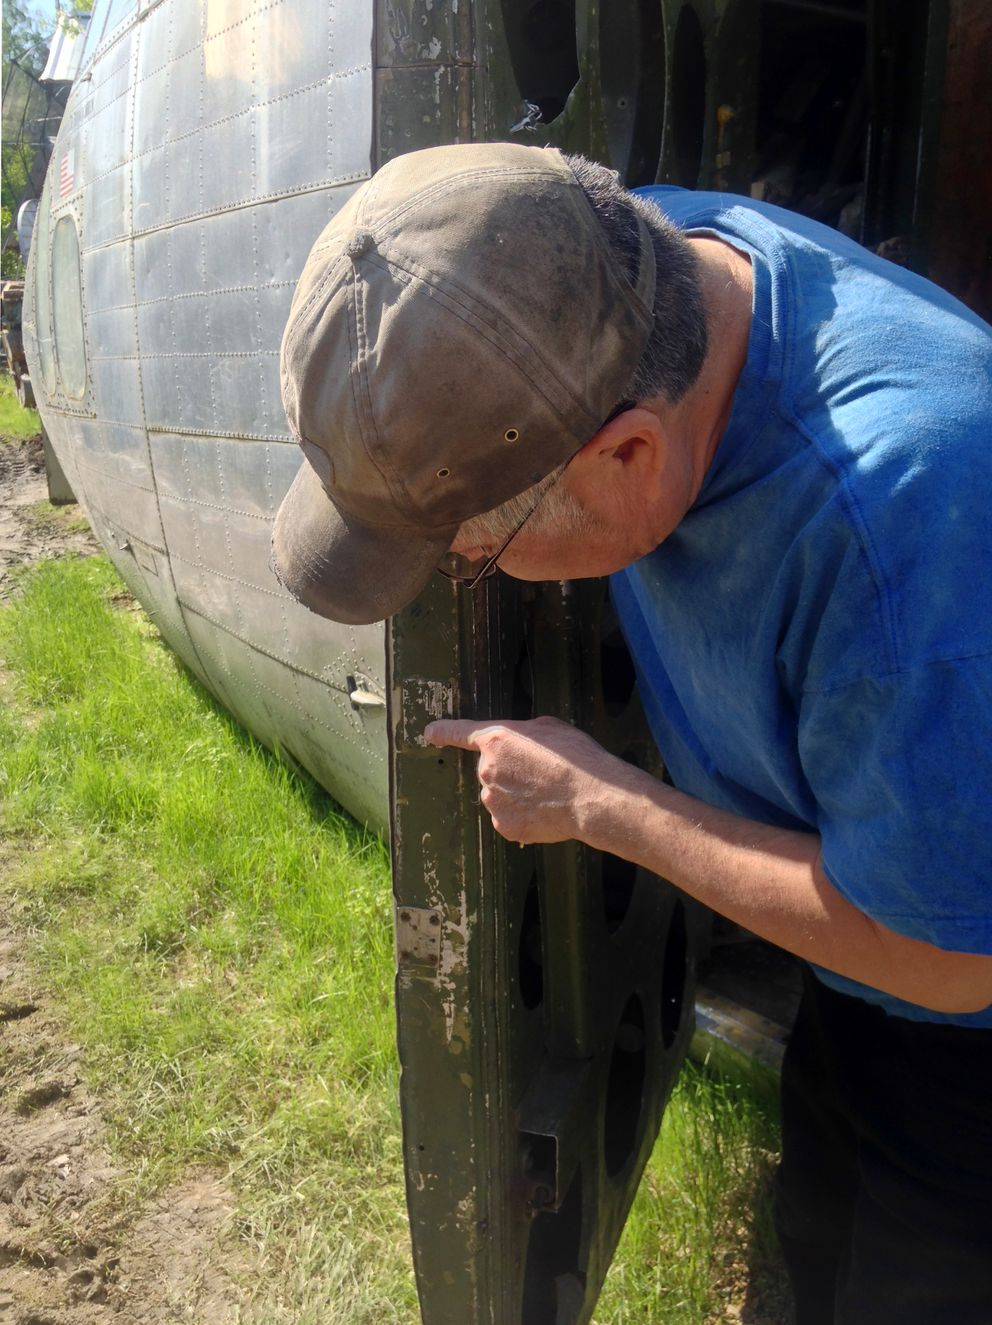 Rudy Hamilton points to the original aircraft serial number on the plane door.(Laurel Andrews / Alaska Dispatch News)